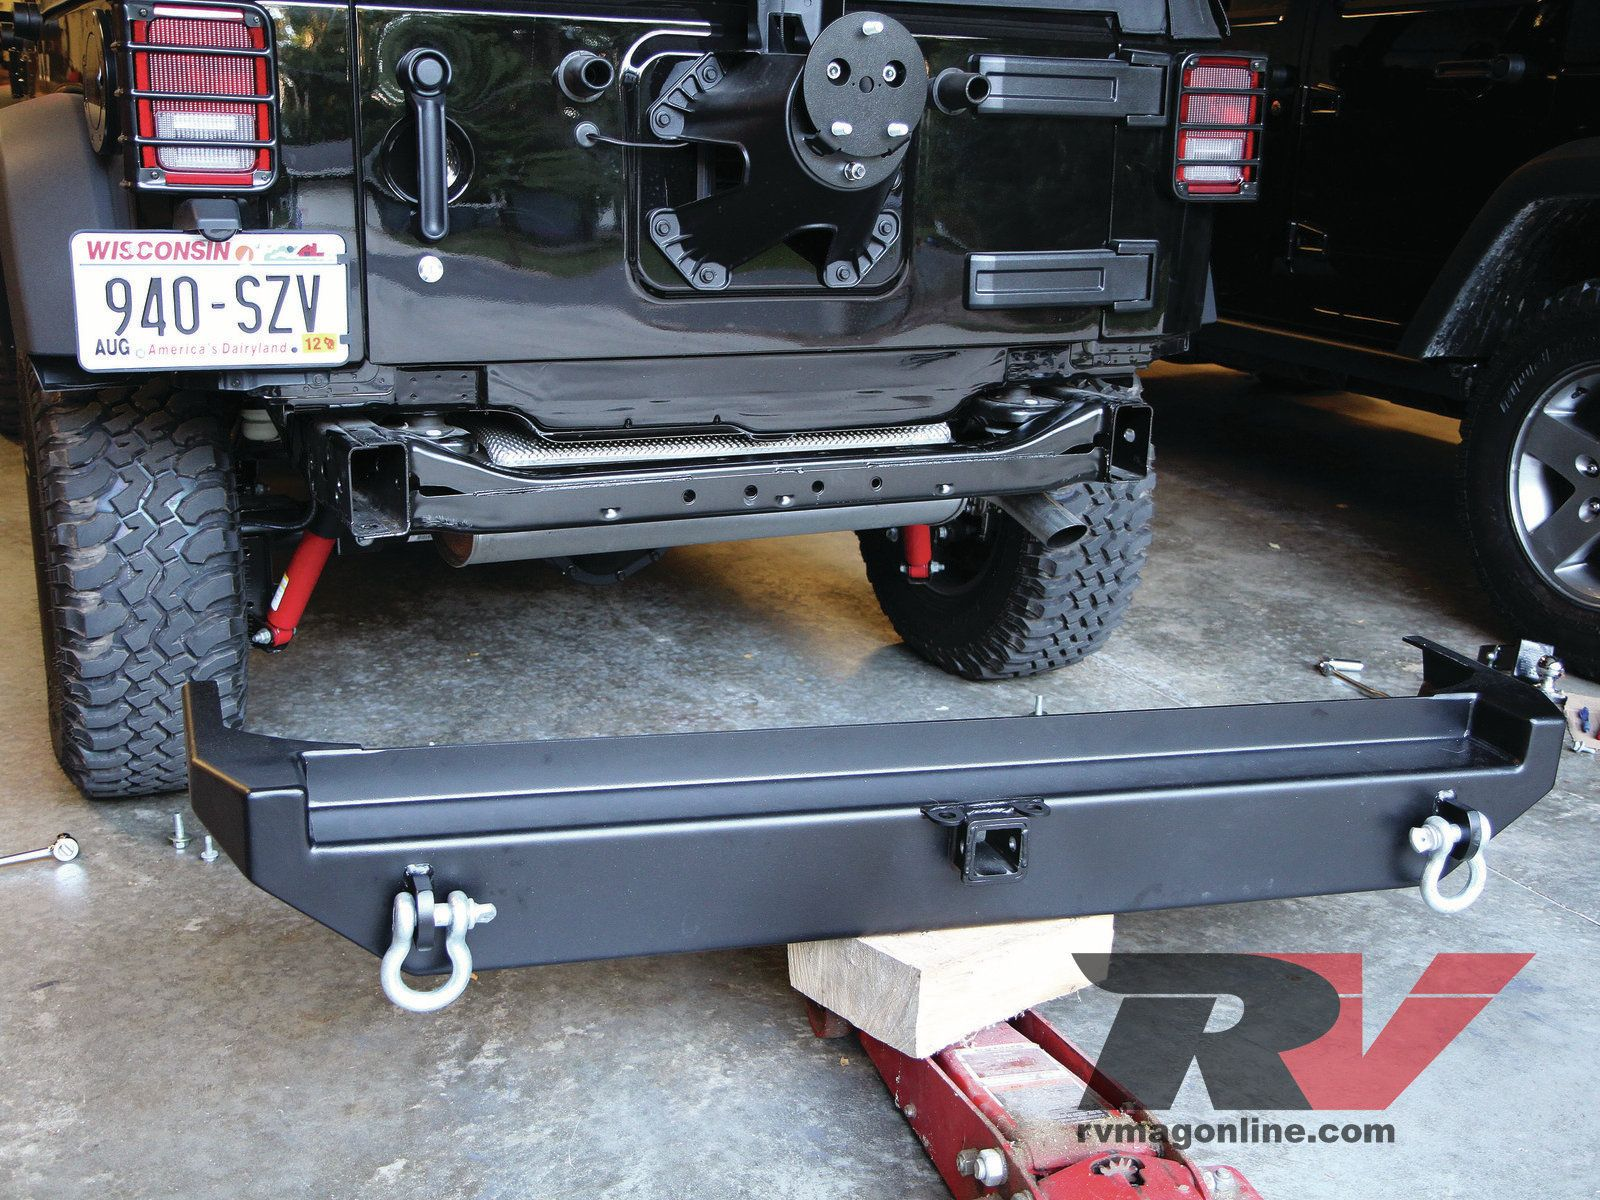 Tweaking An Icon Upgrading Our Jeep Wrangler Unlimited Rv